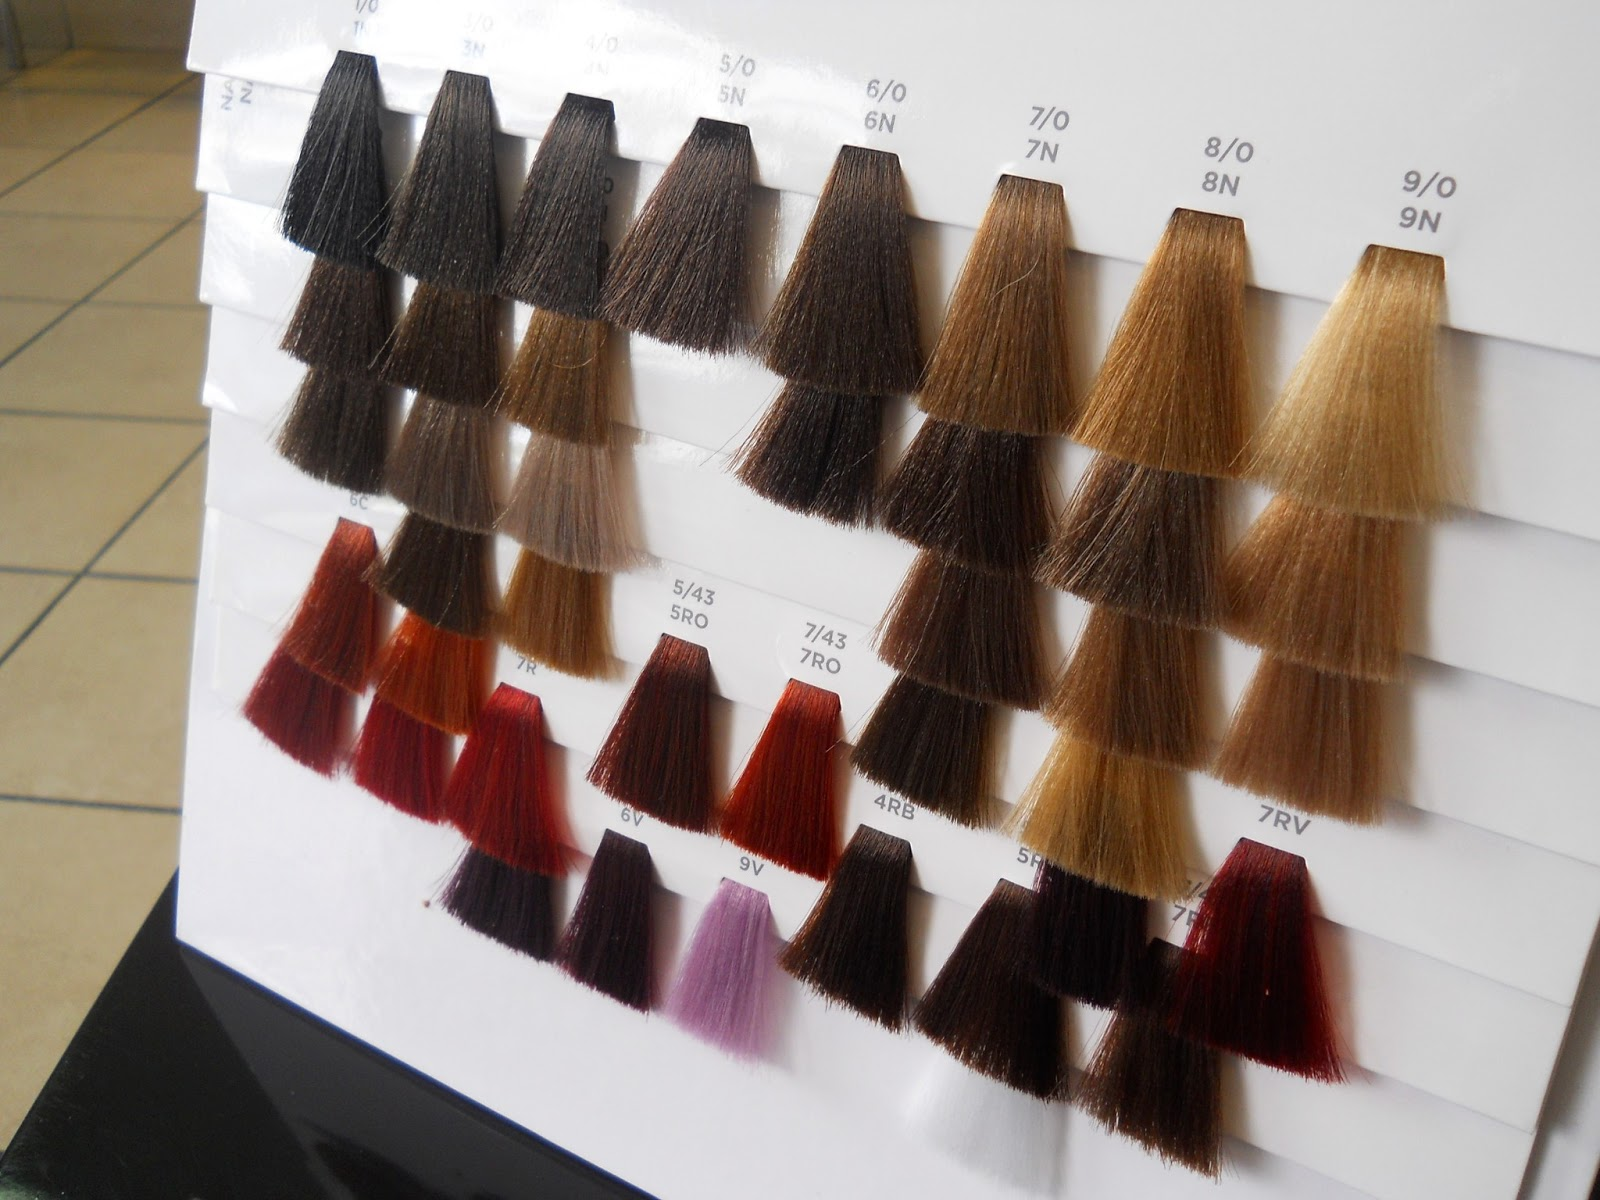 Paul Mitchell Colors Color Chart Hairstyle Inspirations 2018